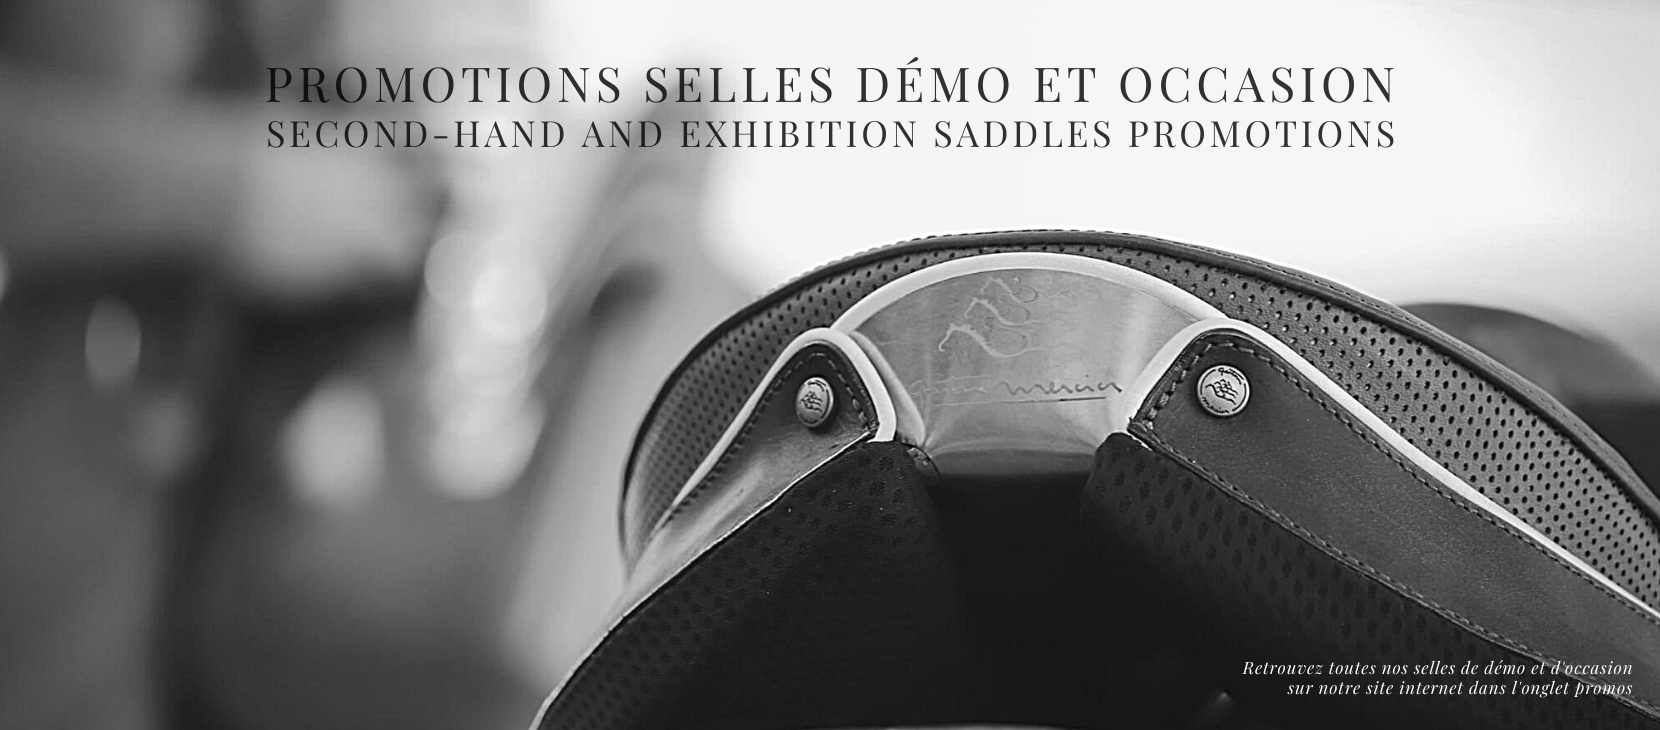 Second-Hand and Exhibition Saddles Promotions